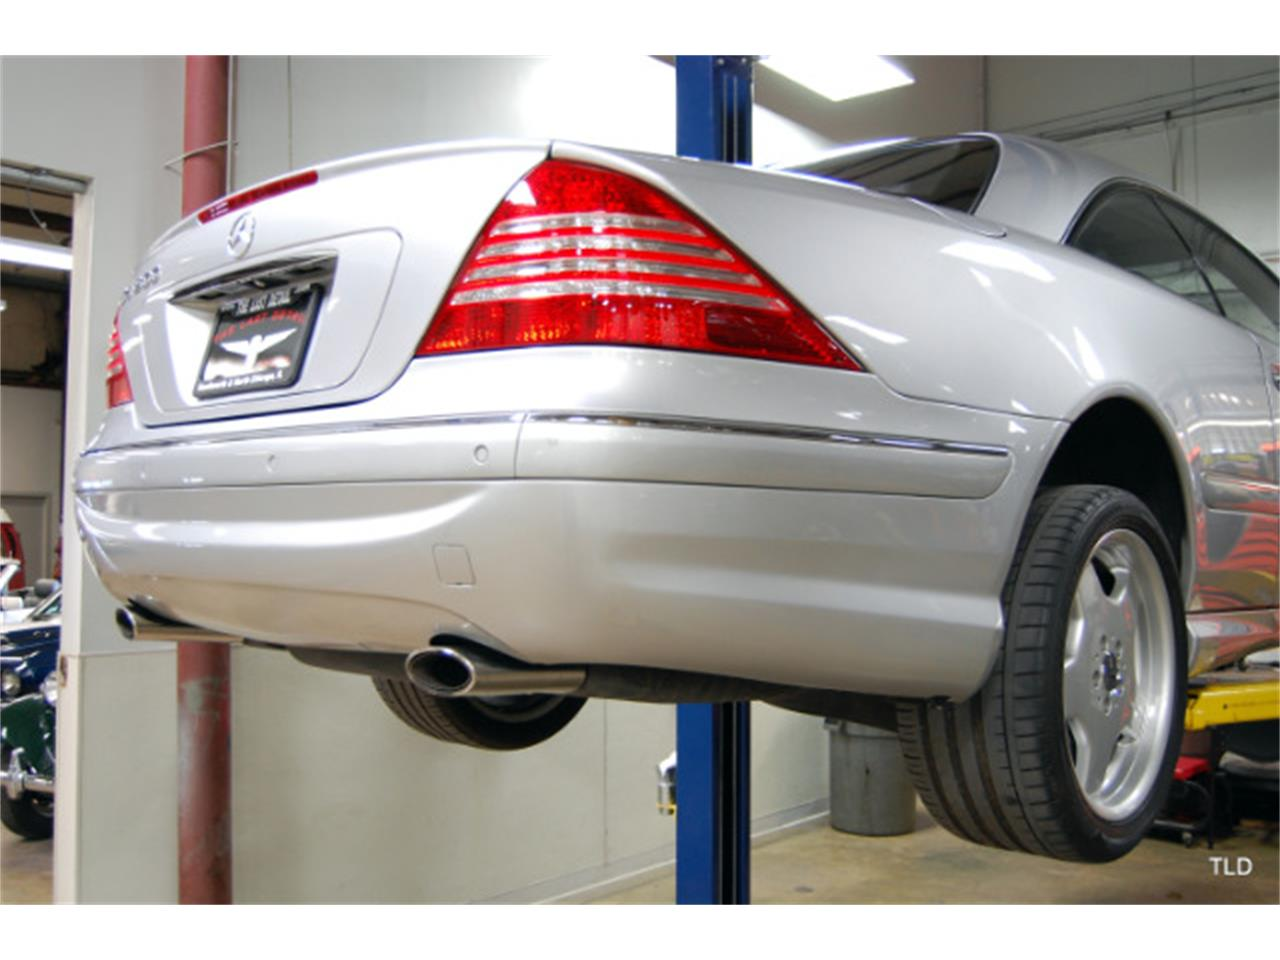 Large Picture of 2001 Mercedes-Benz CL-Class located in Chicago Illinois - $11,000.00 Offered by The Last Detail - LBZK